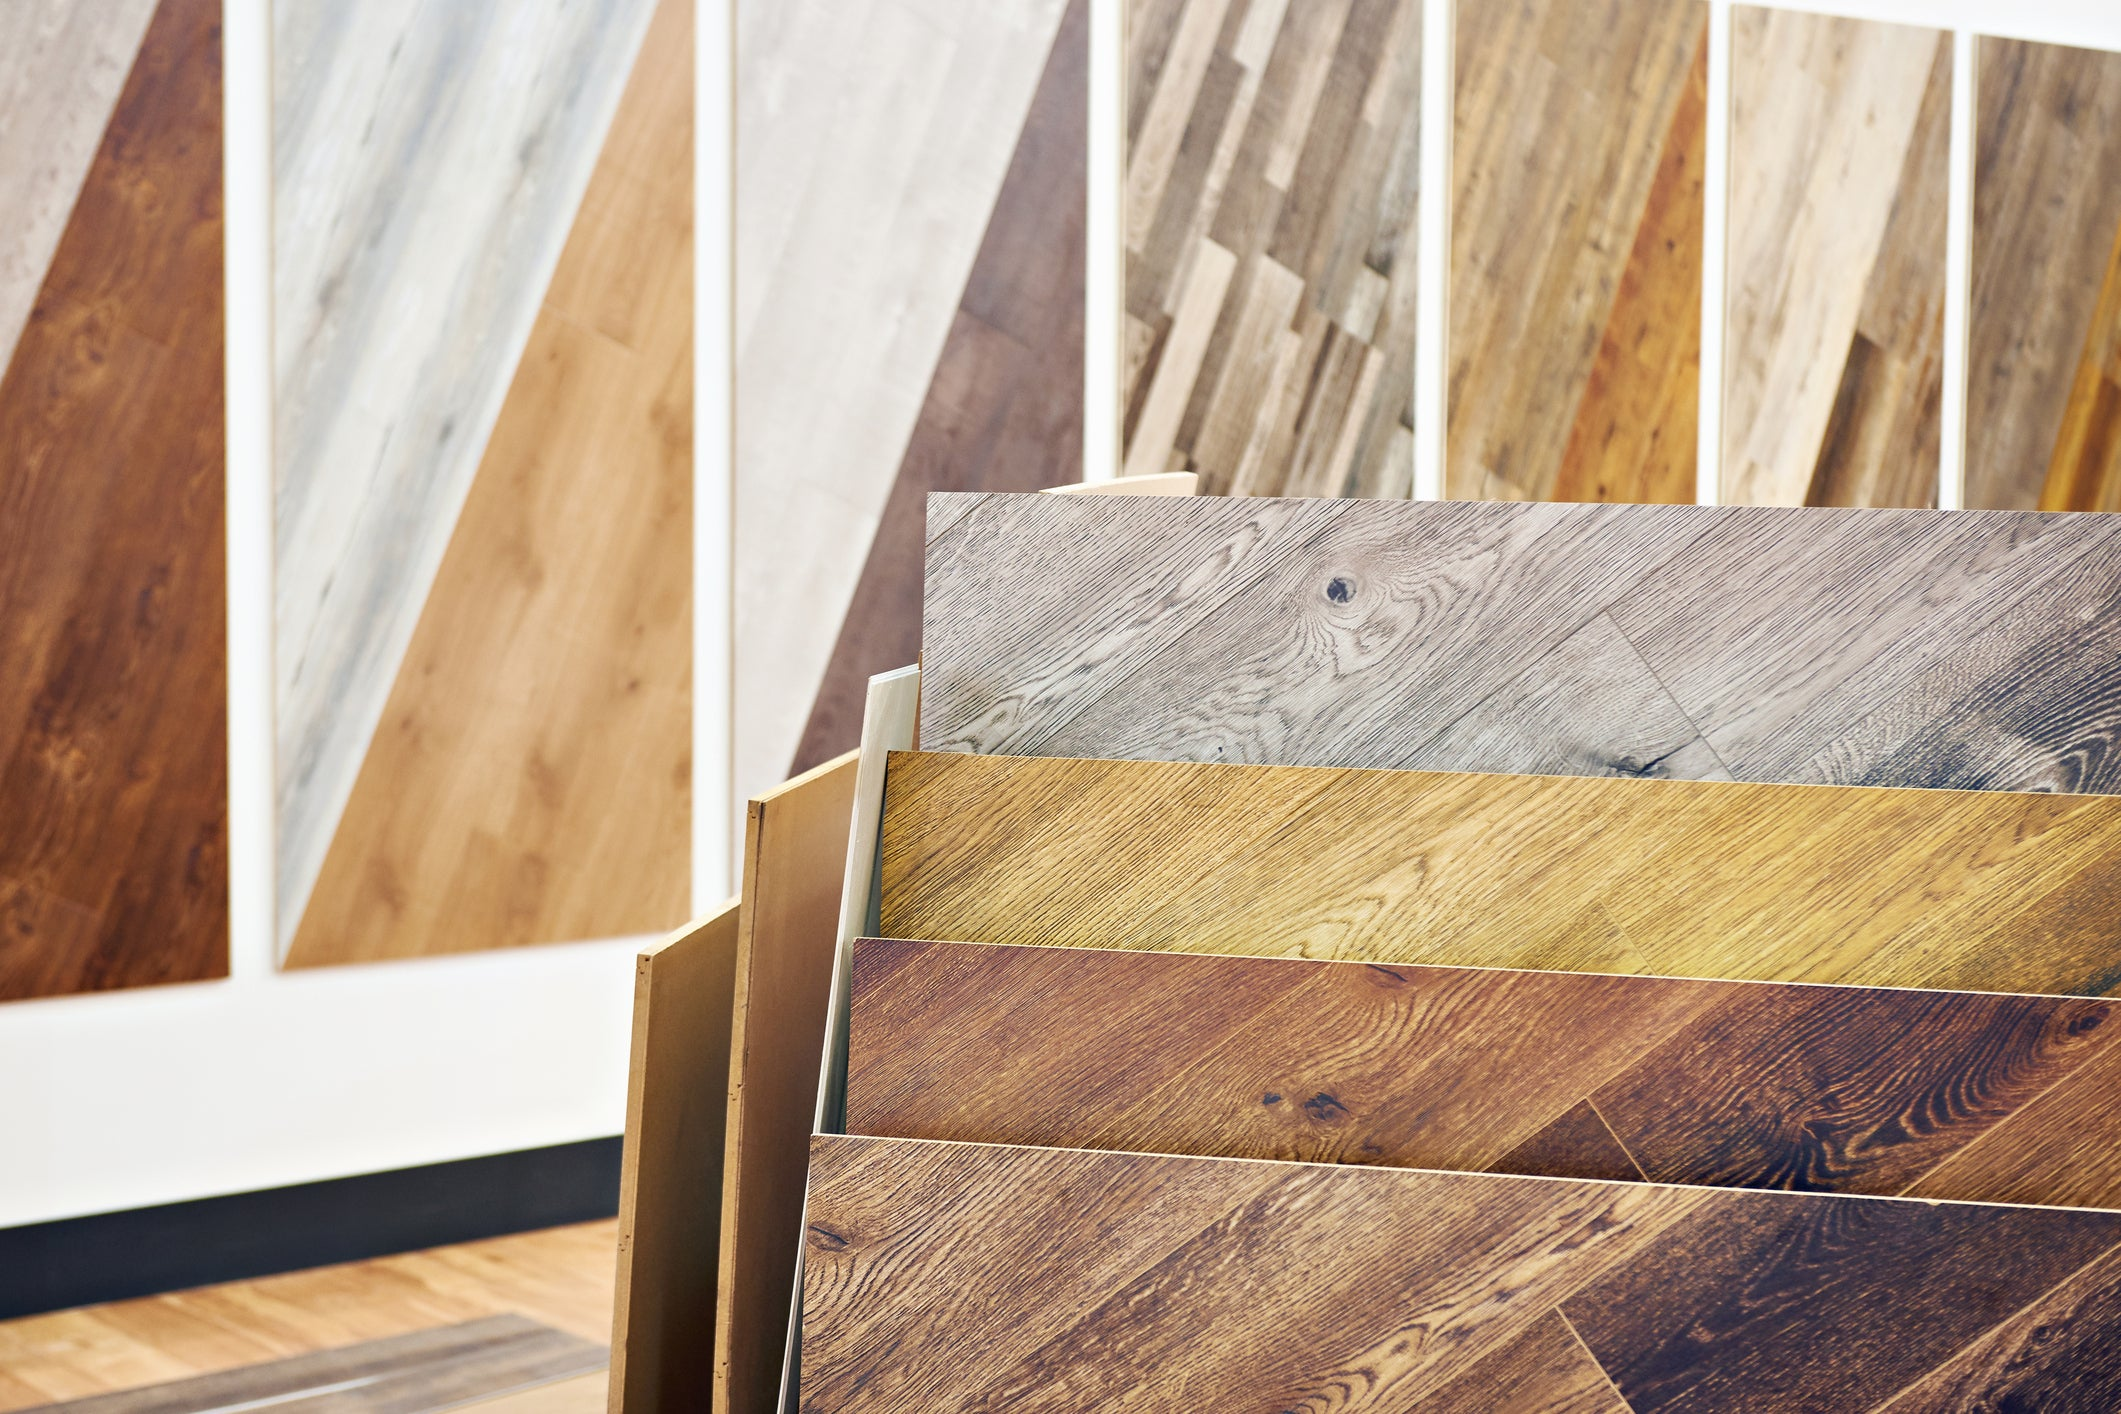 Shares of Lumber Liquidators Drop 16% After a Surge in Legal